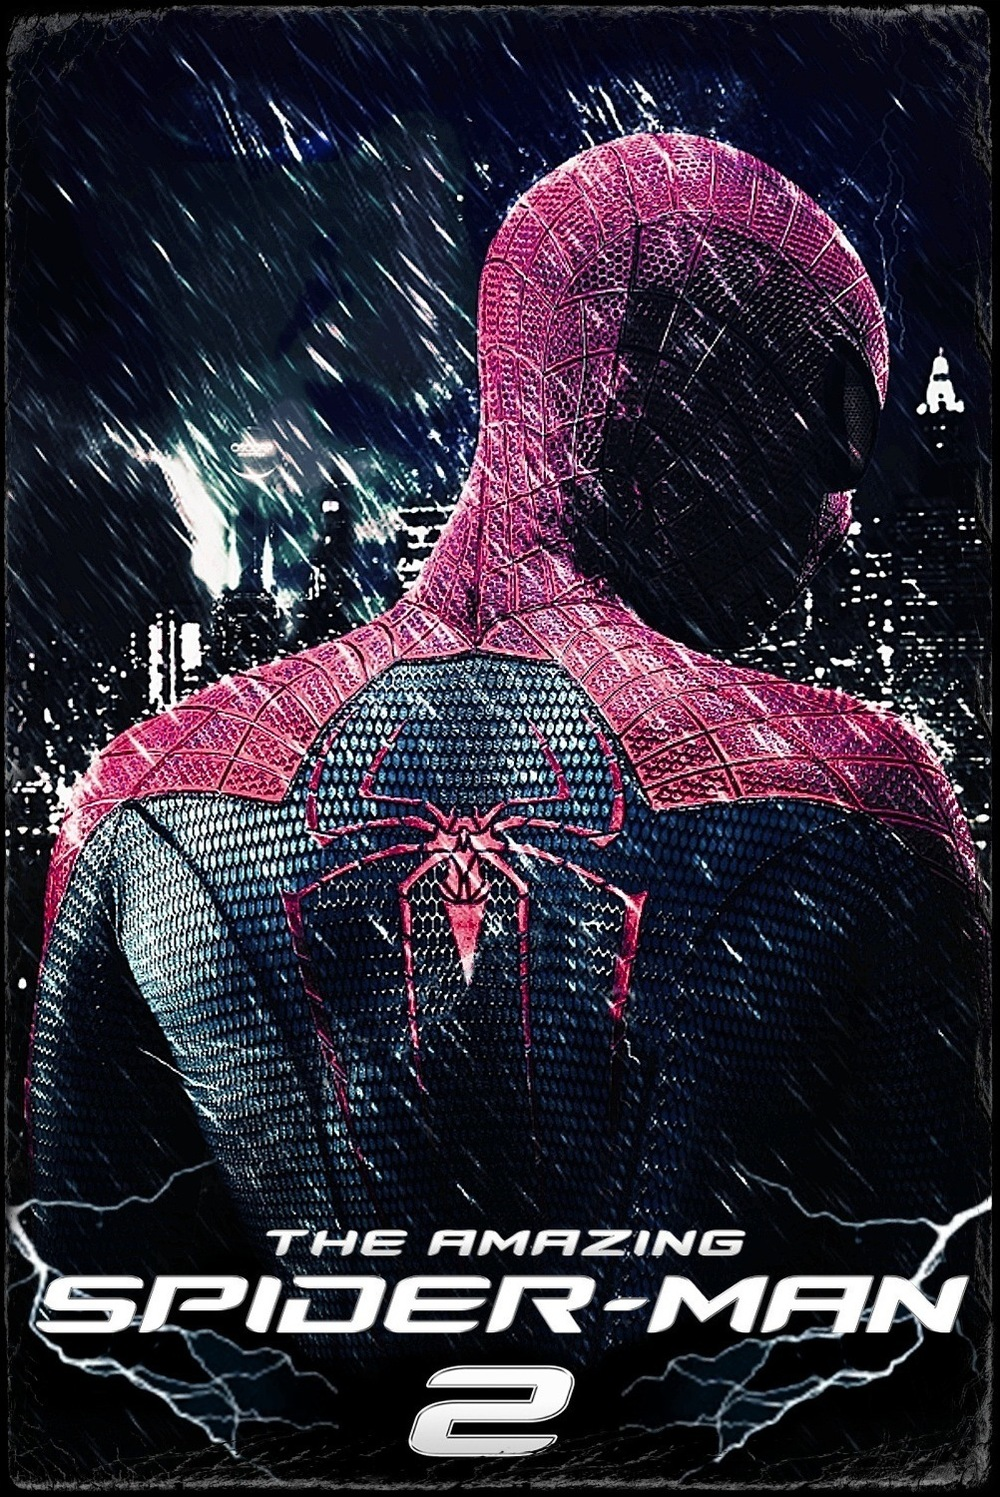 The Amazing Spider